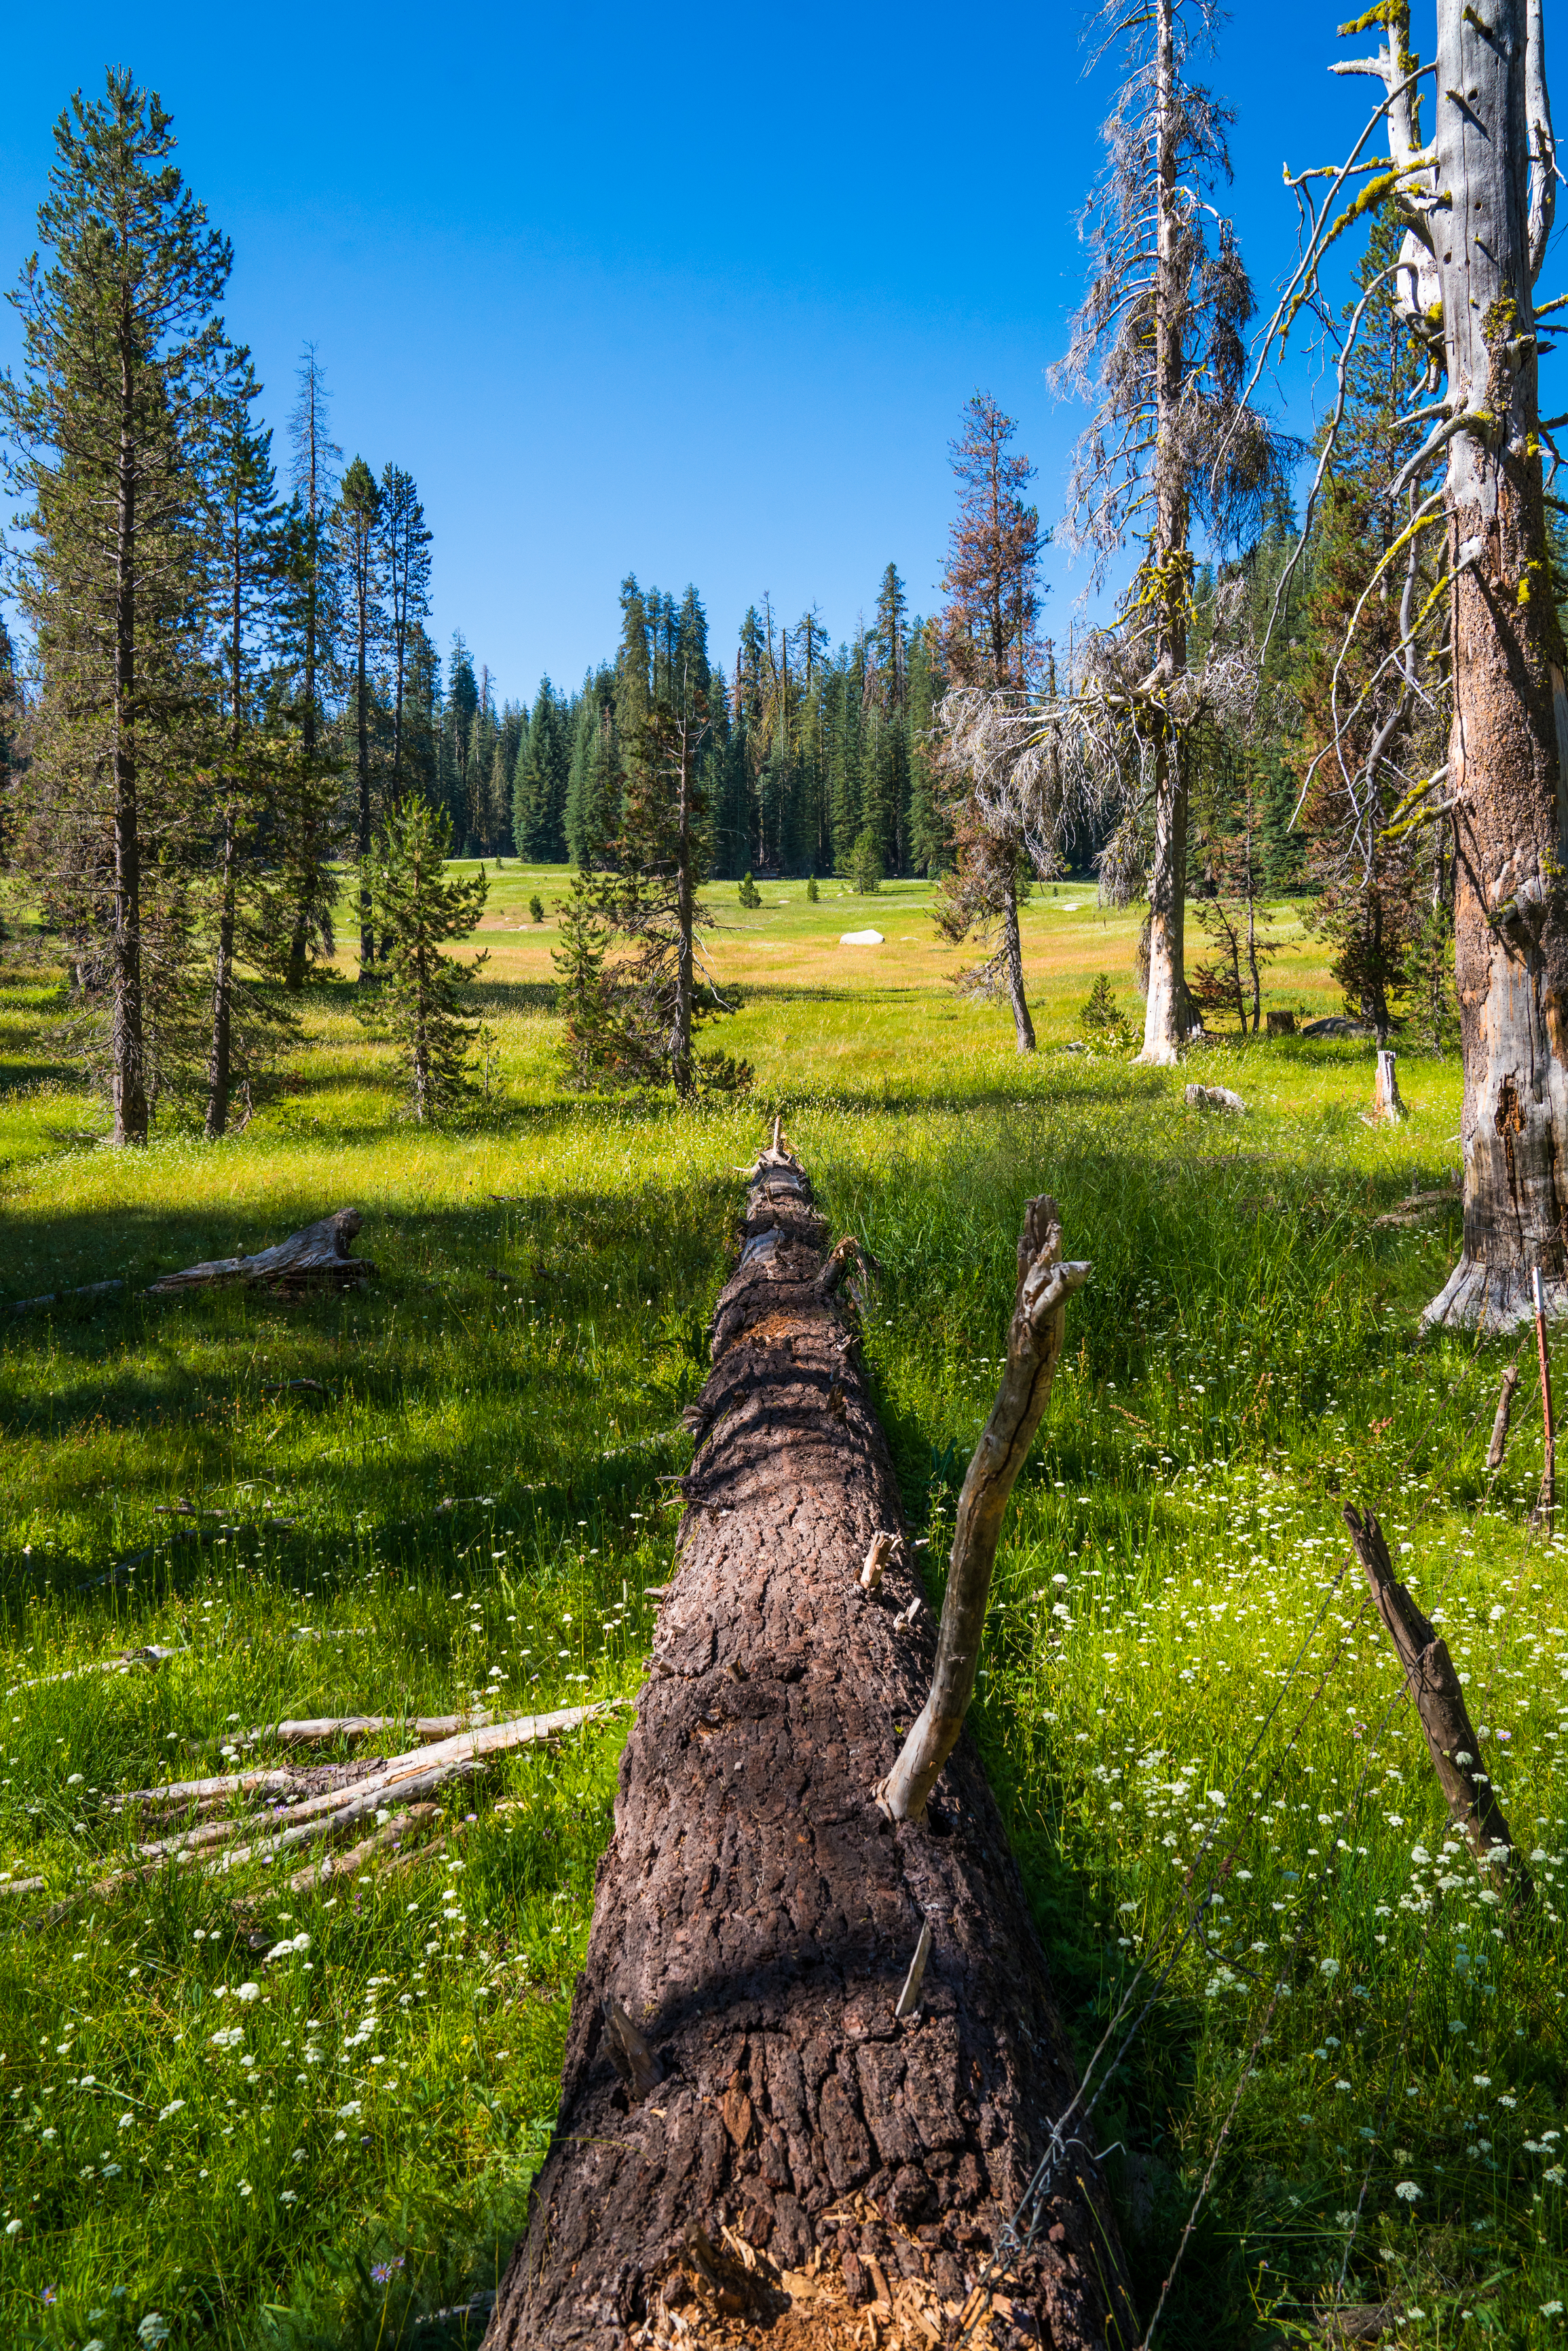 meadow, highsierra, sierra nevada, madera county, summer, wildflowers, forest, sierra national forest, hiking